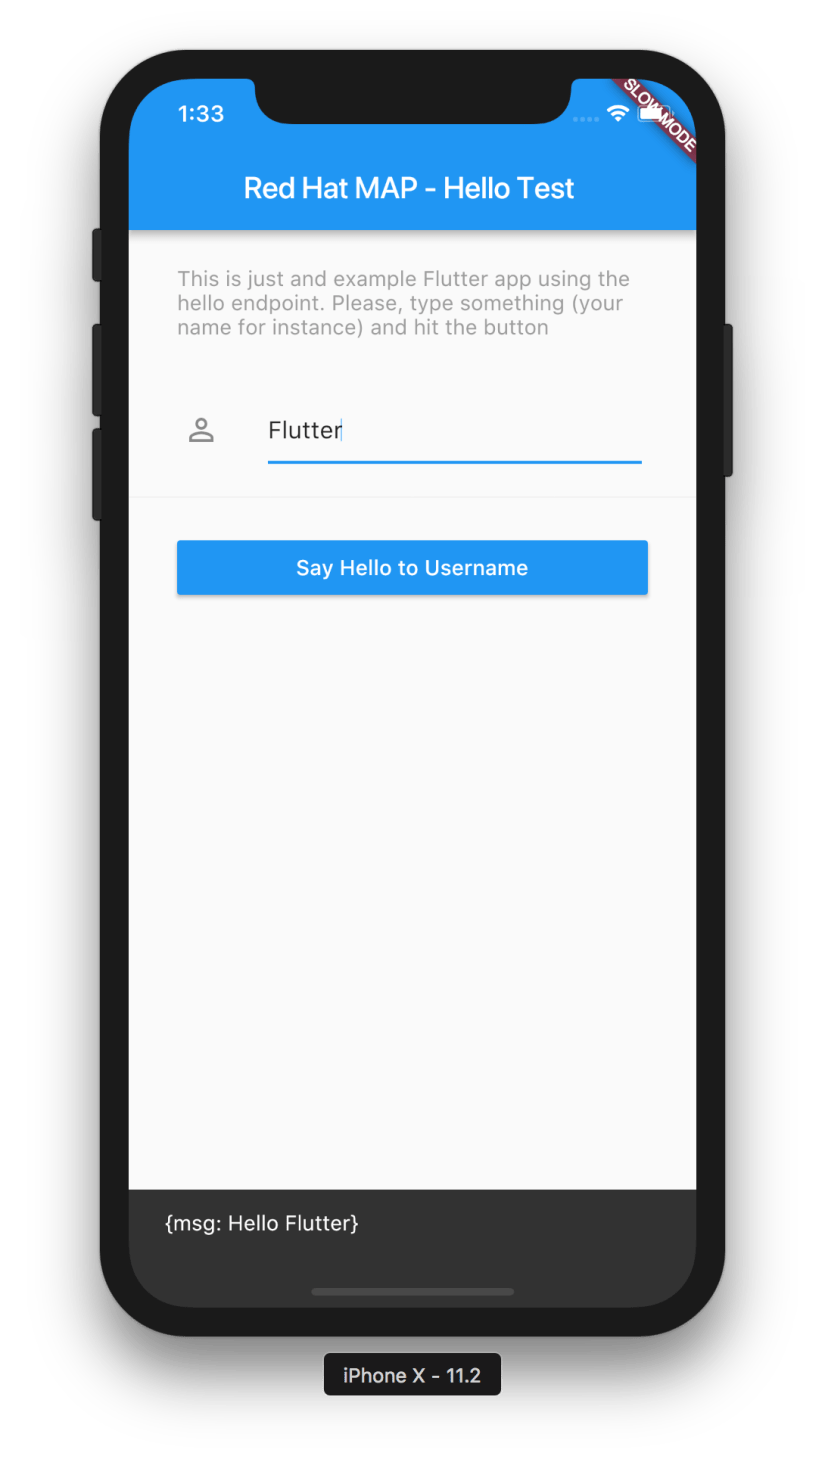 Integrating Flutter with Red Hat Mobile - Open Sourcerers